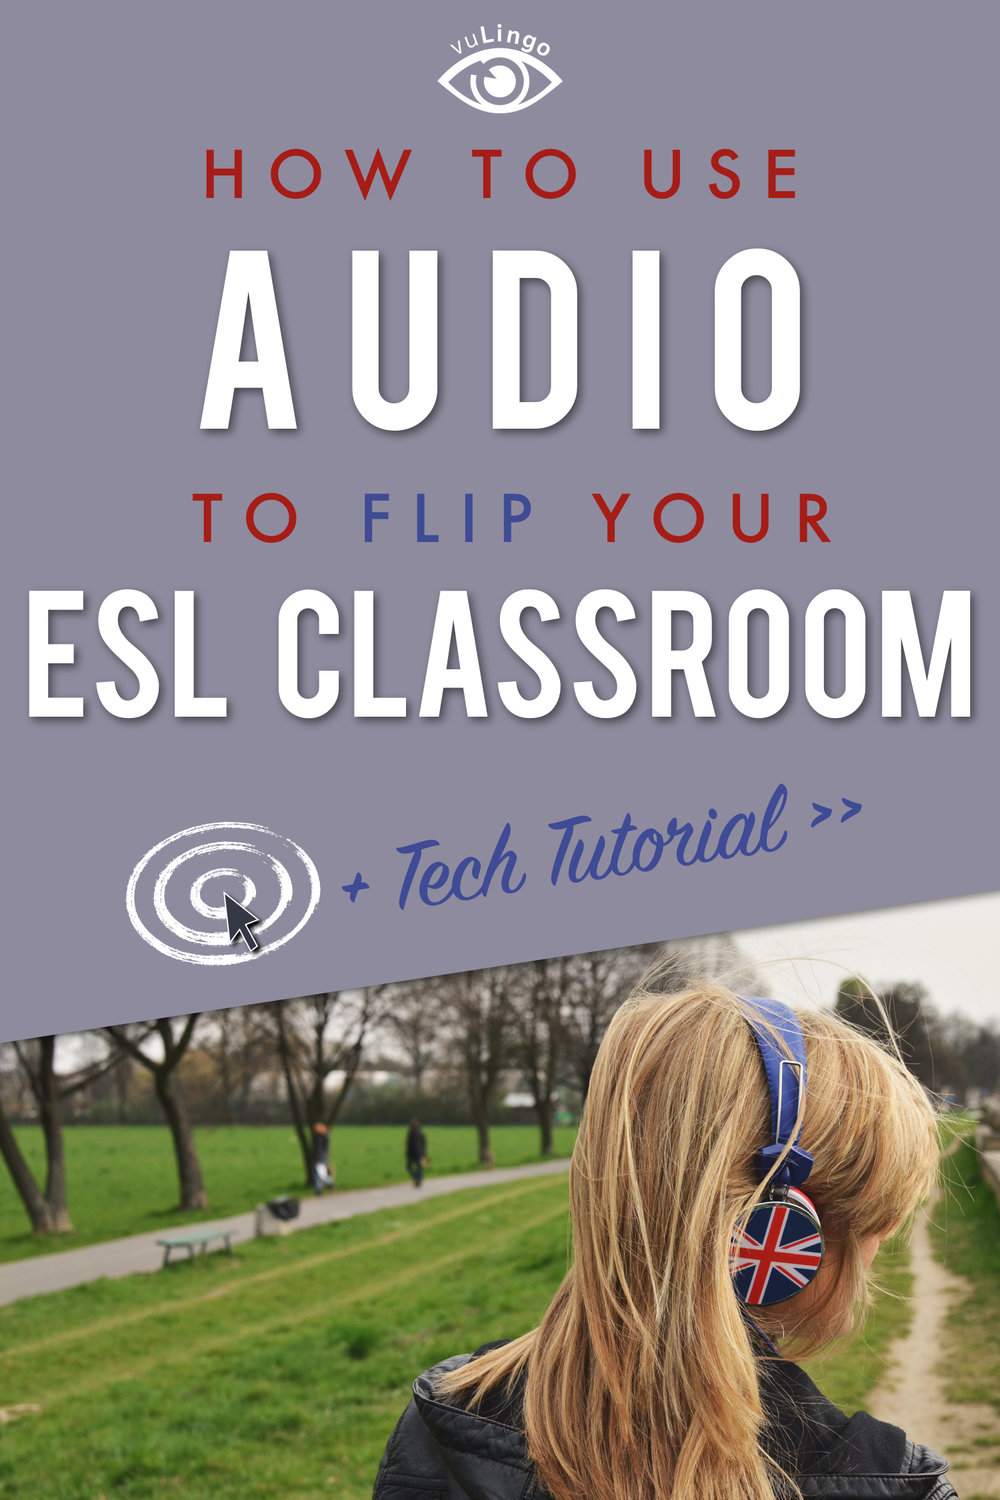 How to Flip your ESL Lesson with Audio 2.jpeg